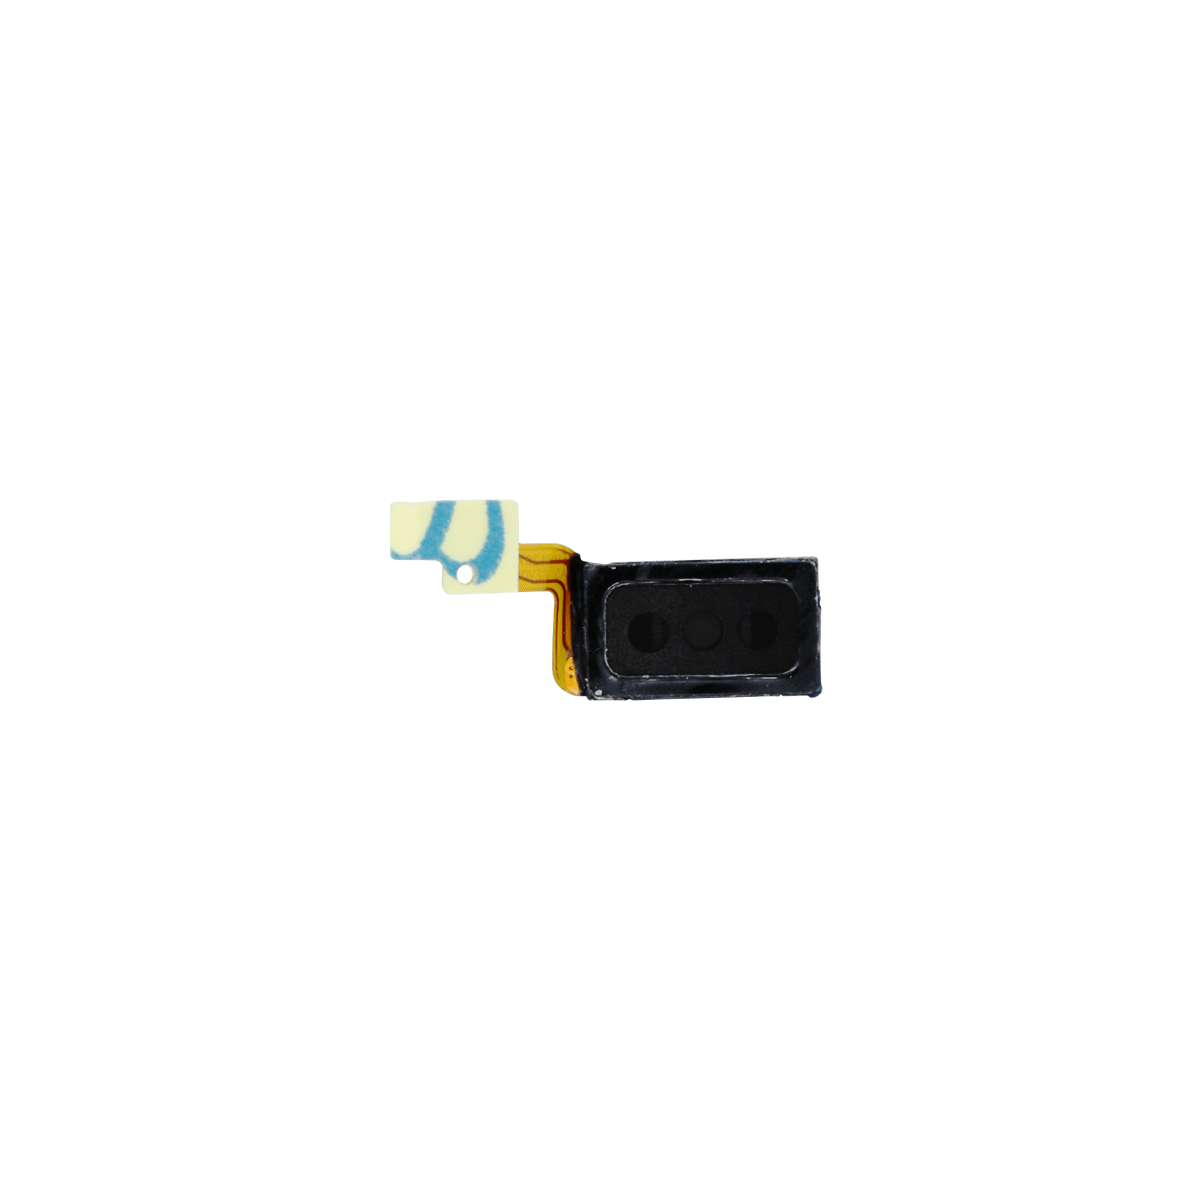 Samsung Galaxy J5 Ear Speaker Replacement